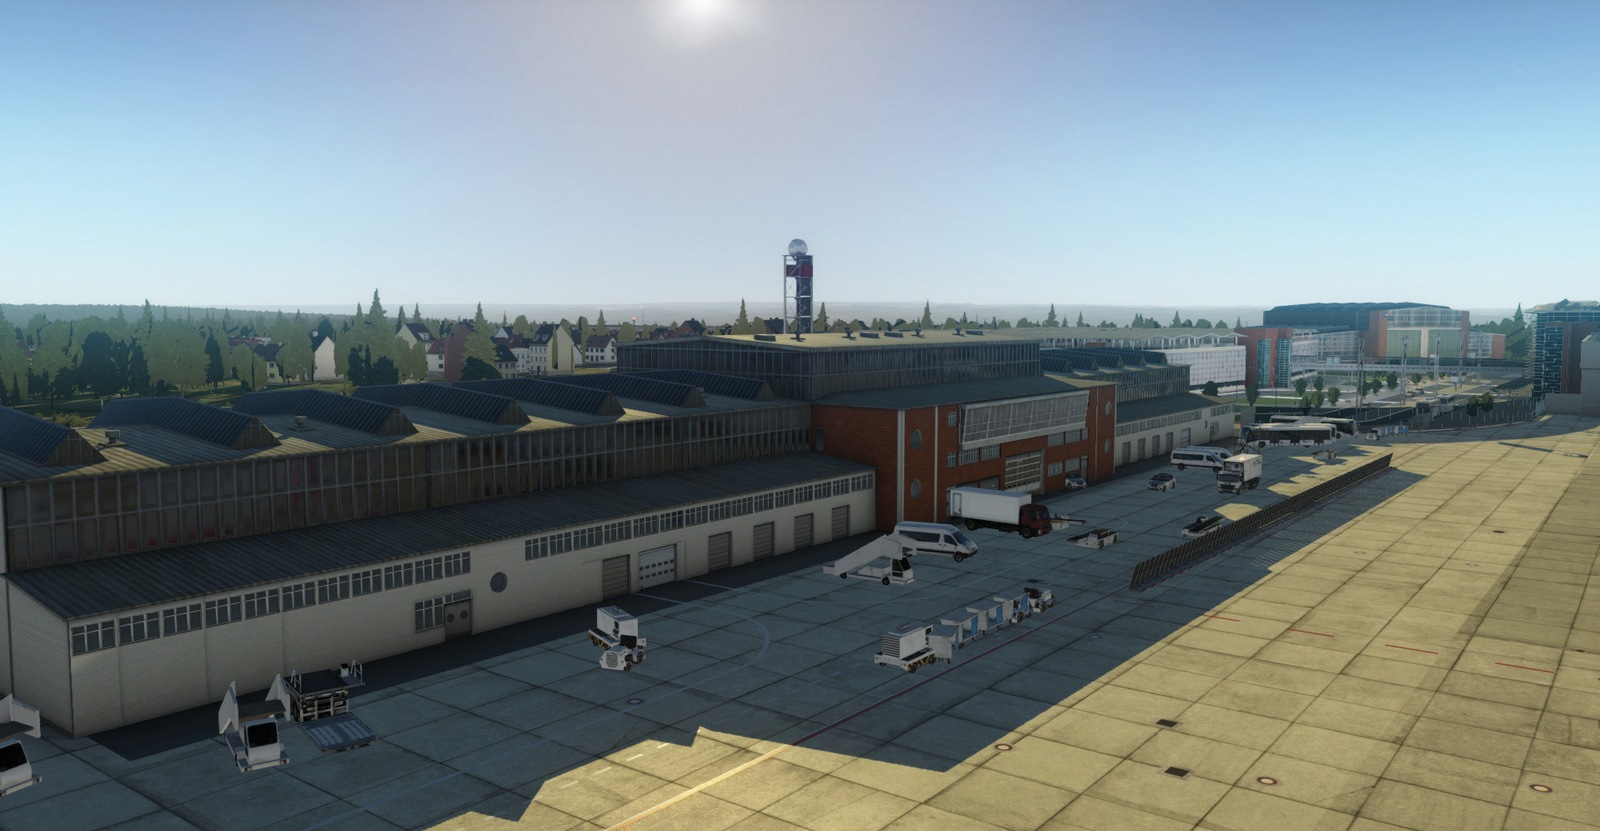 JustSim Has Released Dresden Airport EDDC for XPlane 11 FSElite